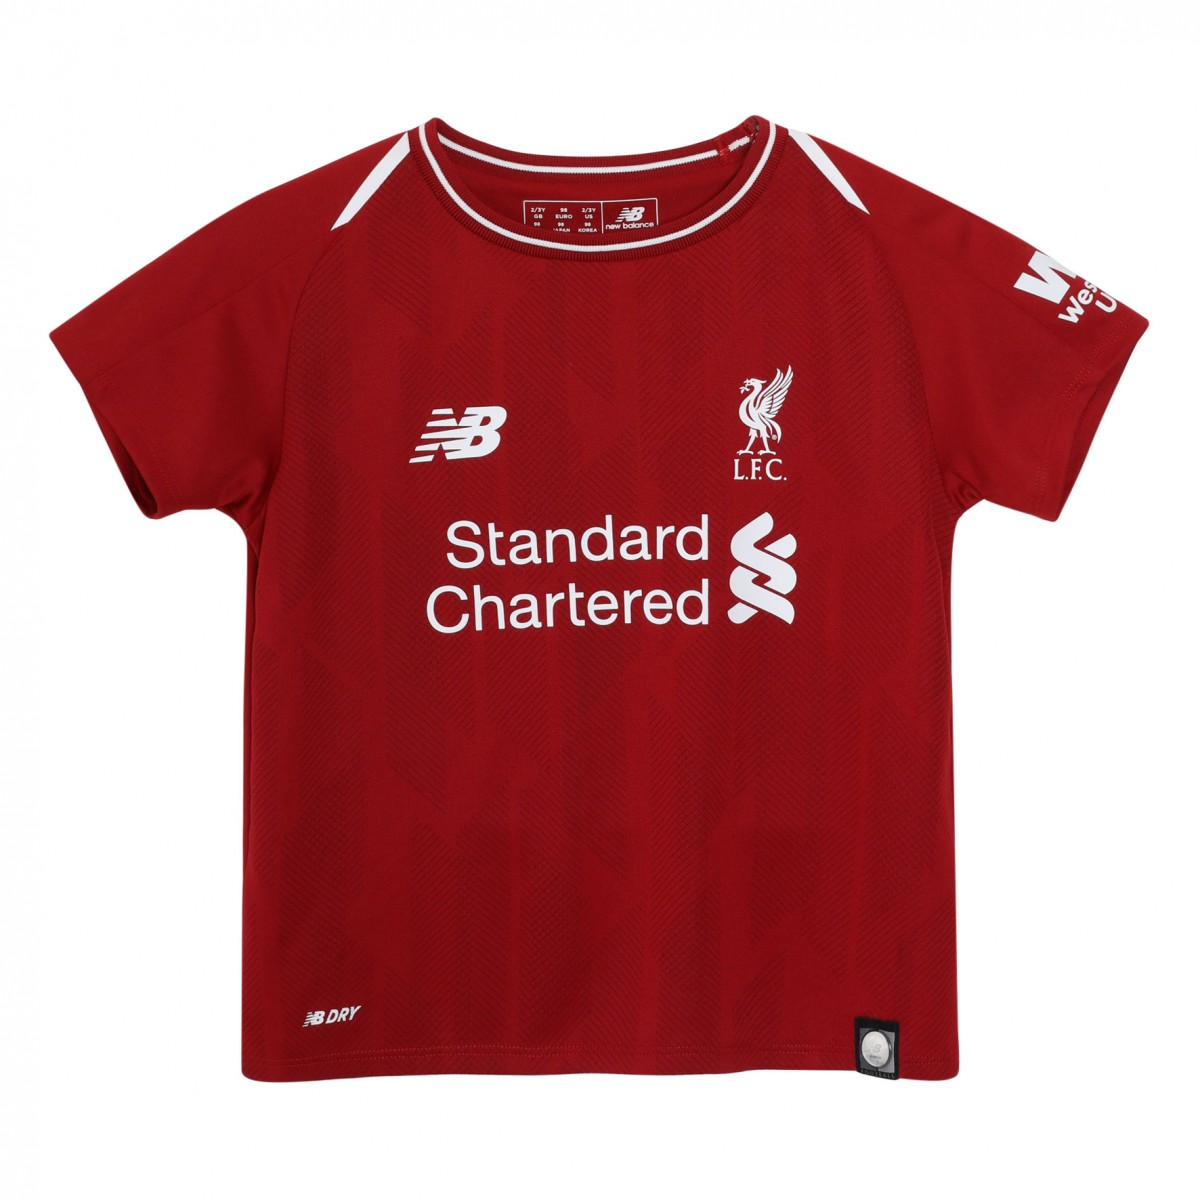 4db92345a 2018-2019 Liverpool Home Baby Kit  BY830039  - Uksoccershop